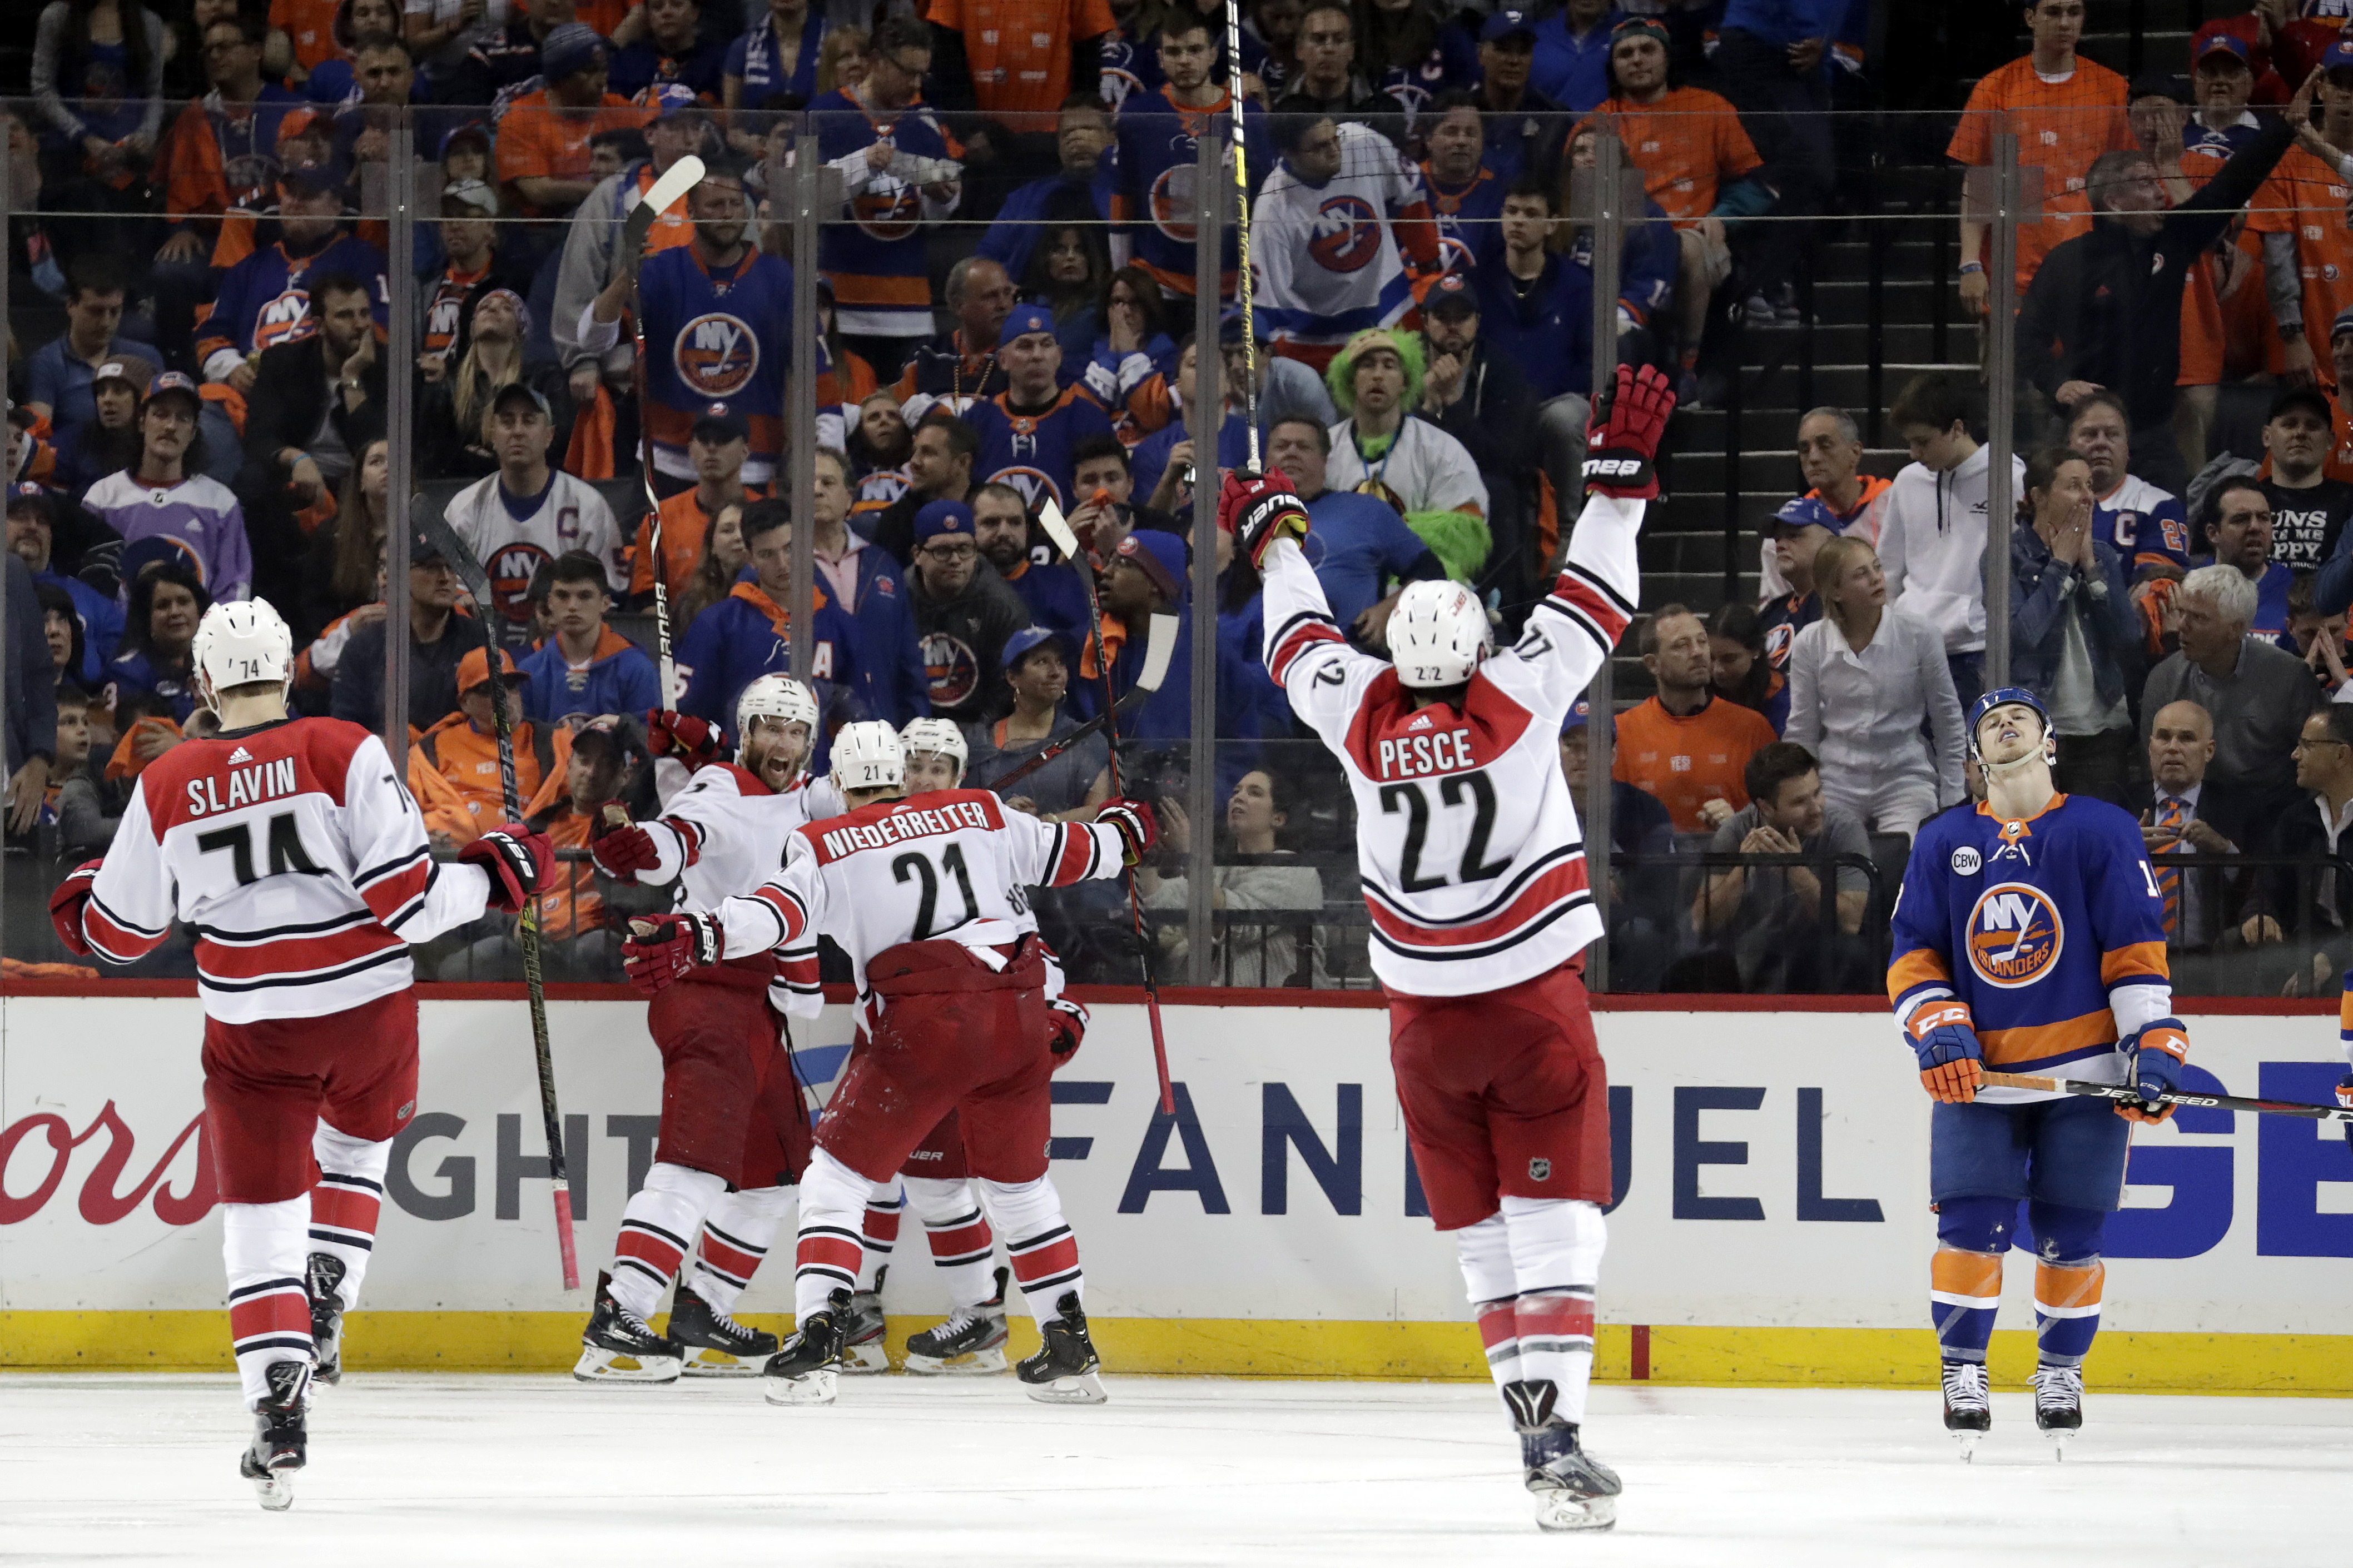 Staal lifts Hurricanes past Islanders 1-0 in OT in Game 1